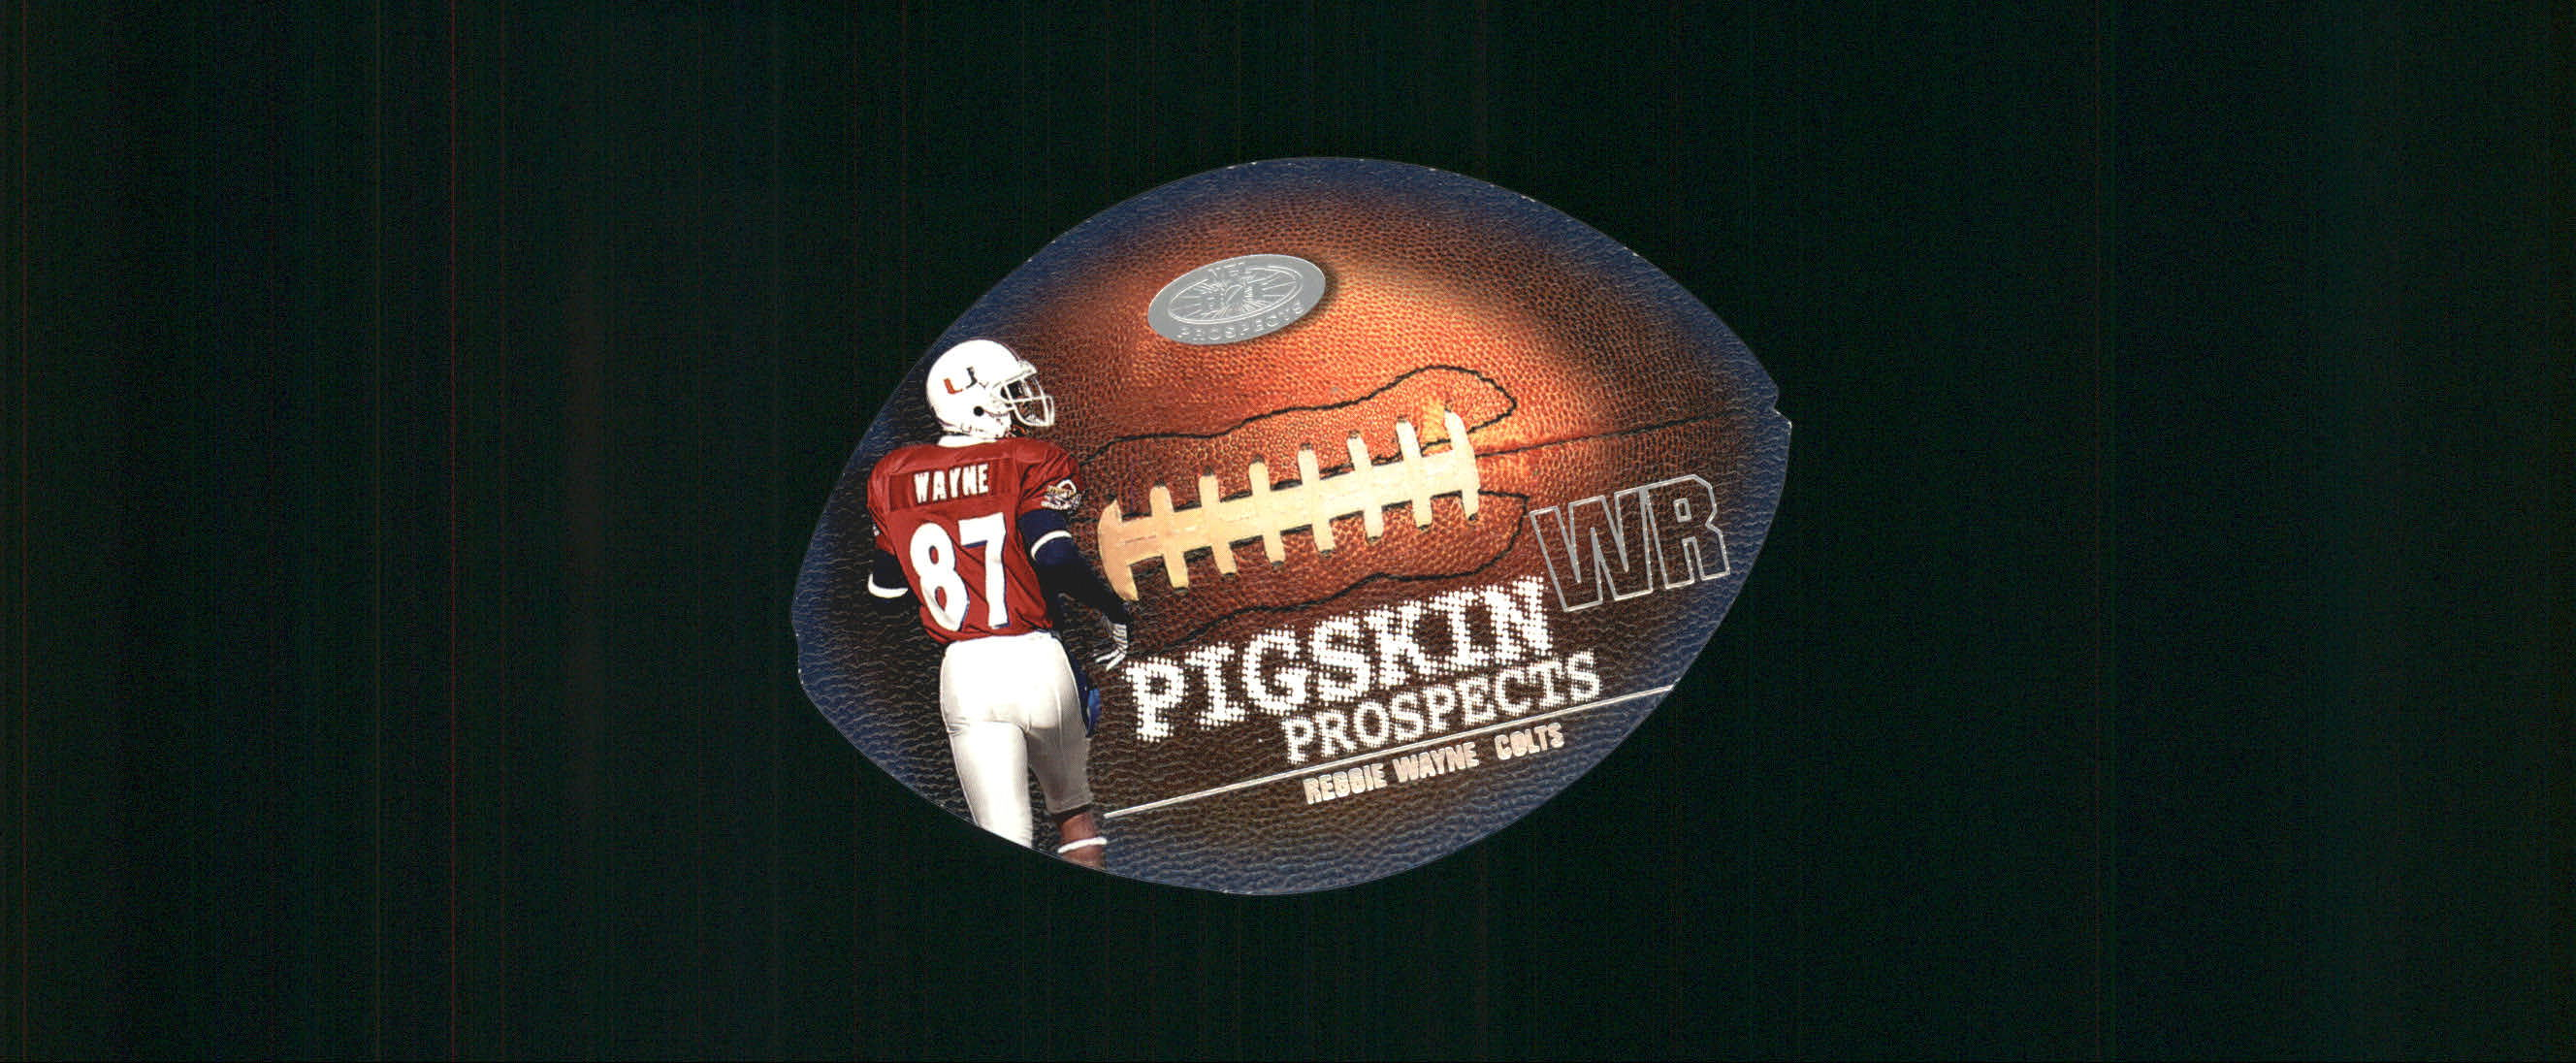 2001 Hot Prospects Pigskin Prospects #PP6 Reggie Wayne